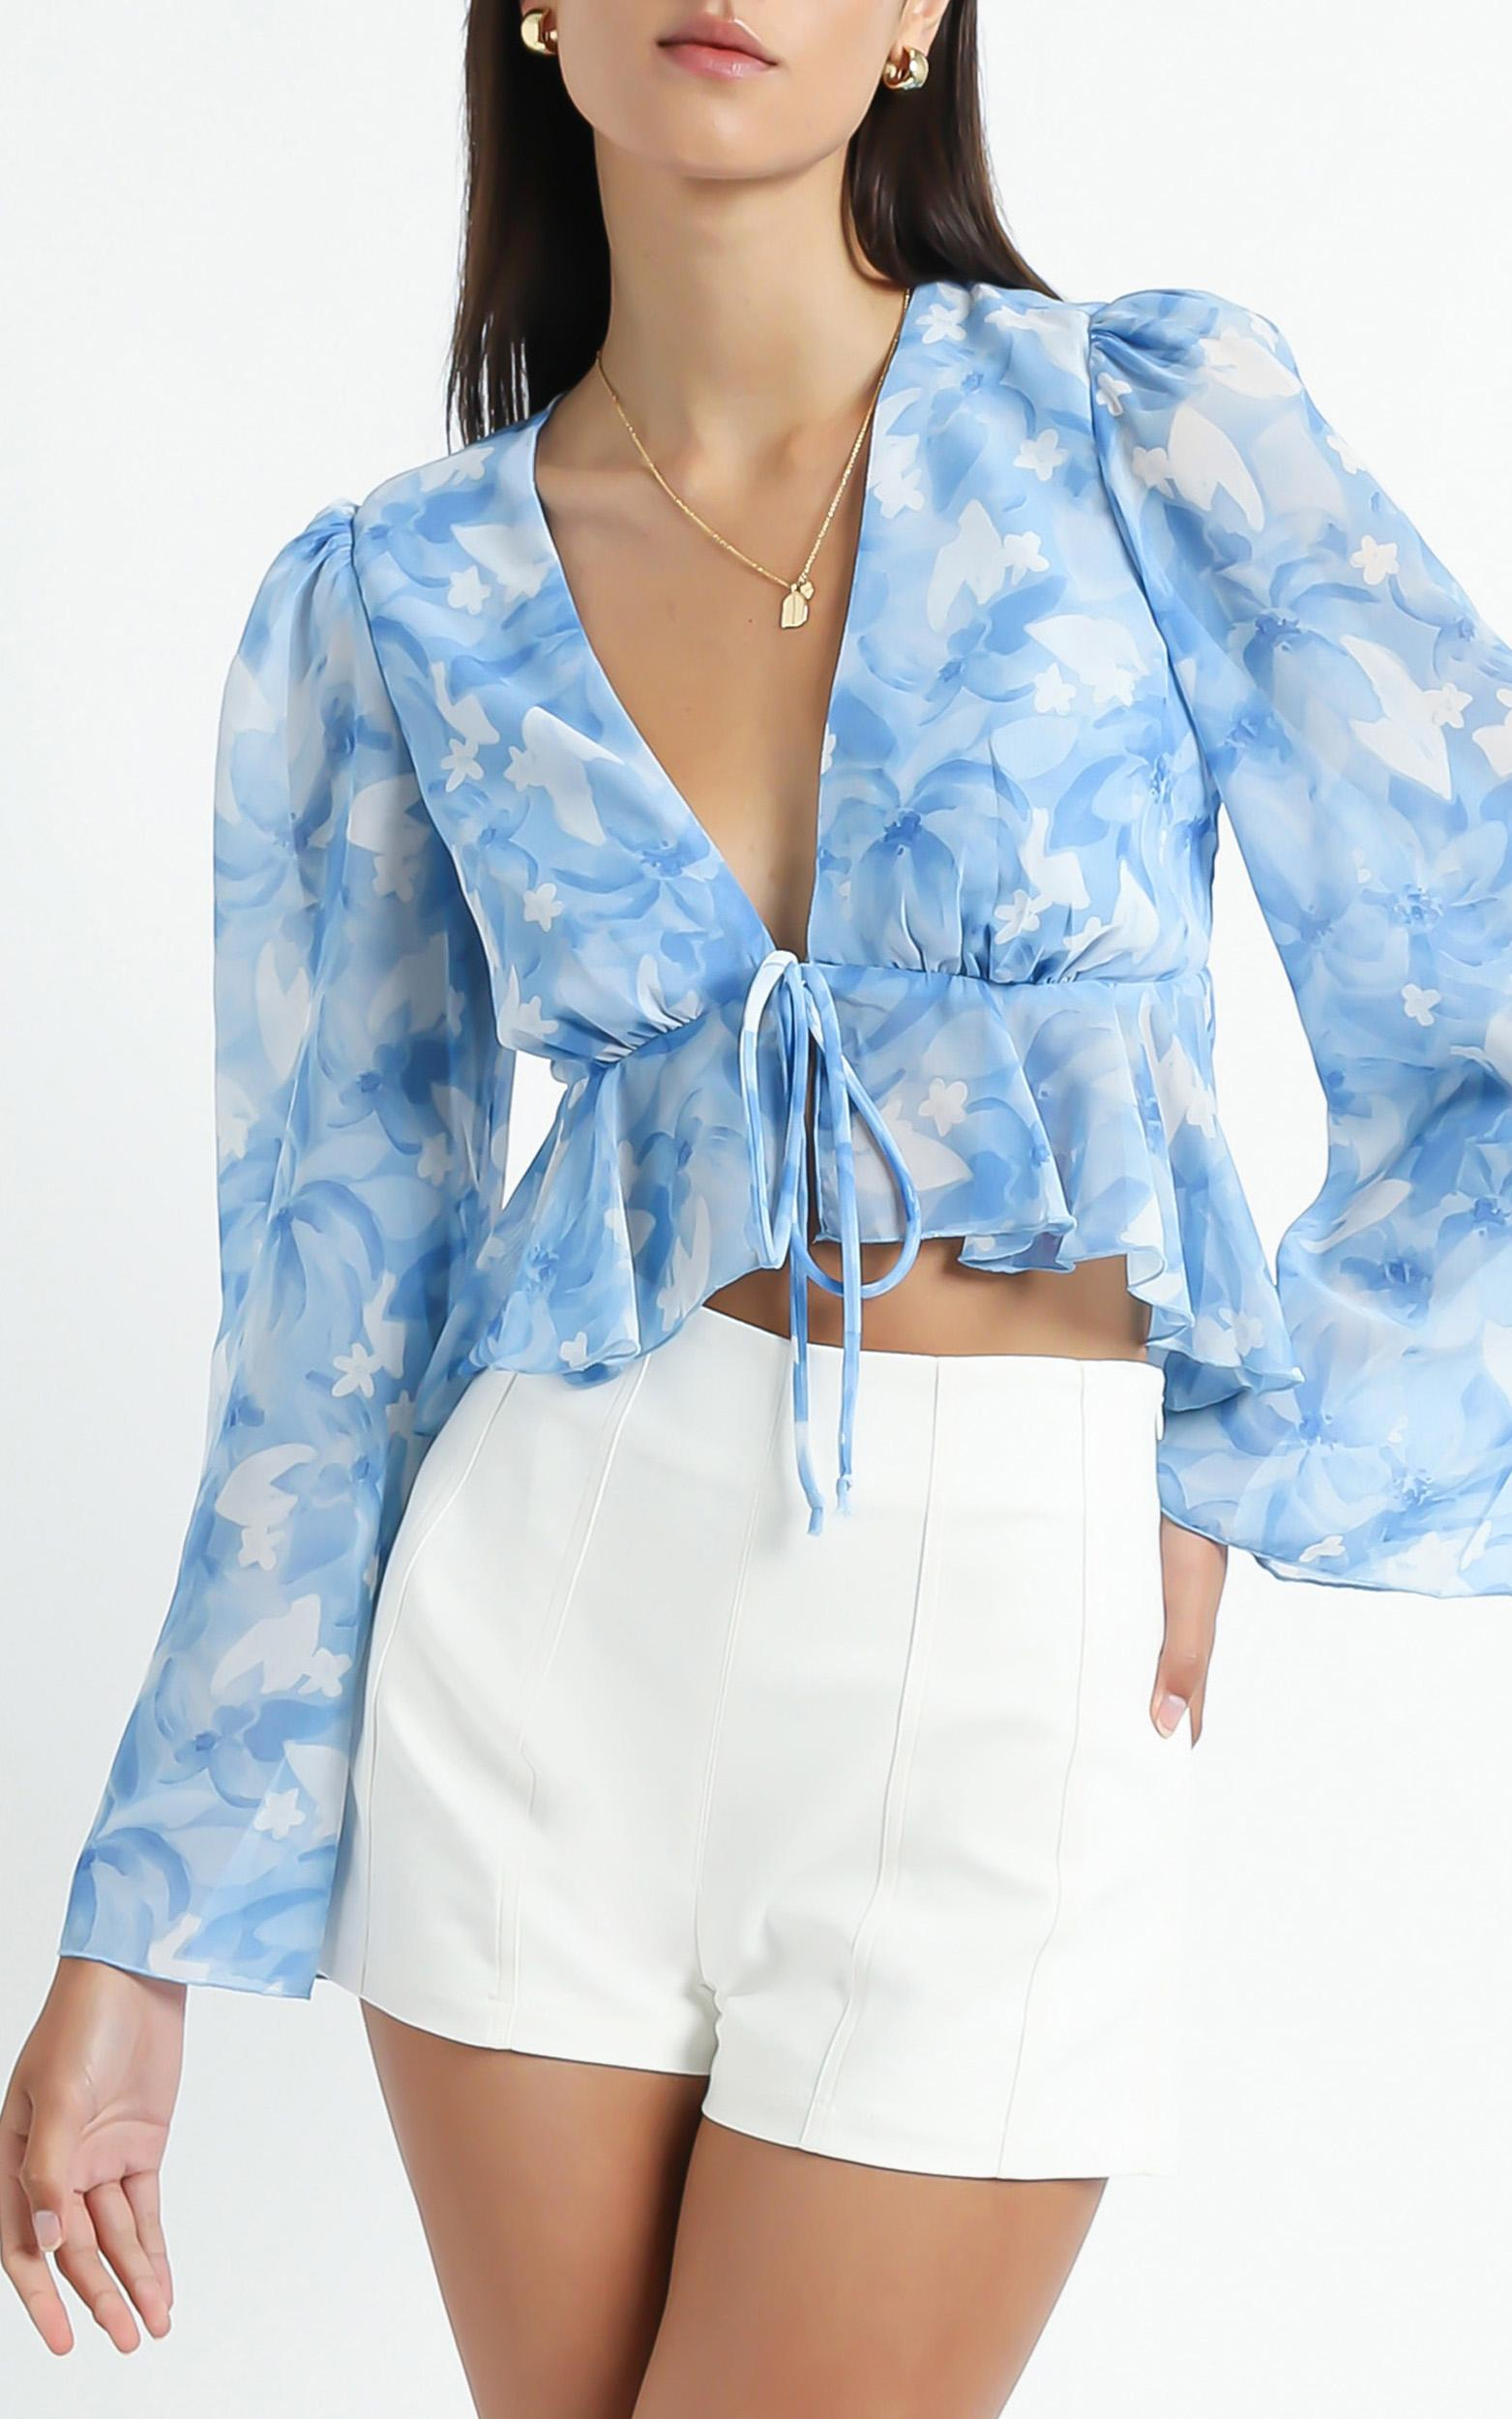 Dance It Out Top in Cloudy Floral - 6 (XS), BLU2, hi-res image number null